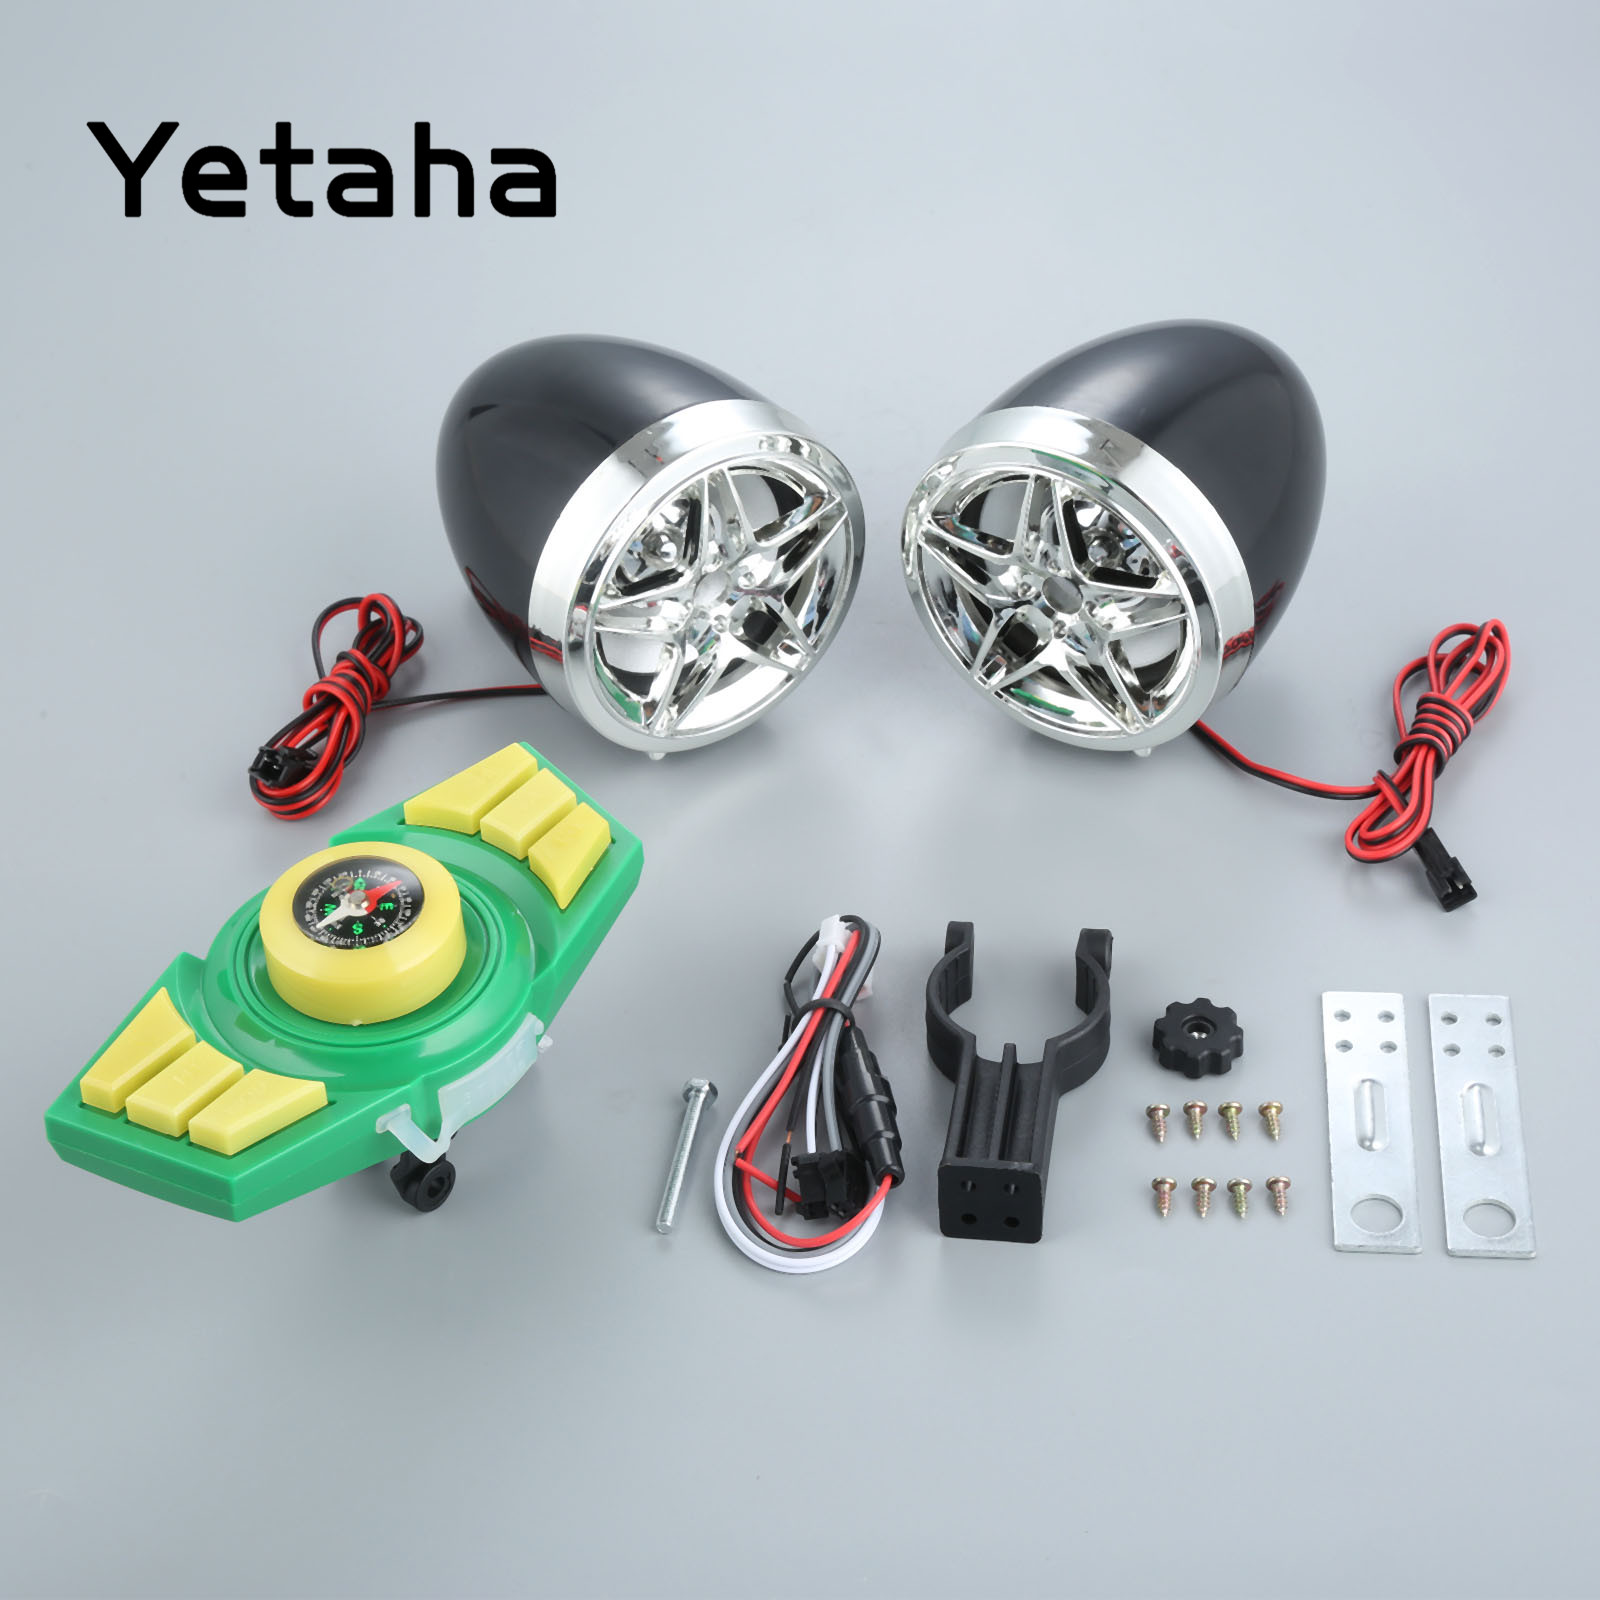 Yetaha Motorcycle Mp3 Player Audio Waterproof Motorcycle Speakers With Bluetooth Charging Phone Support USB TF Card Carrier